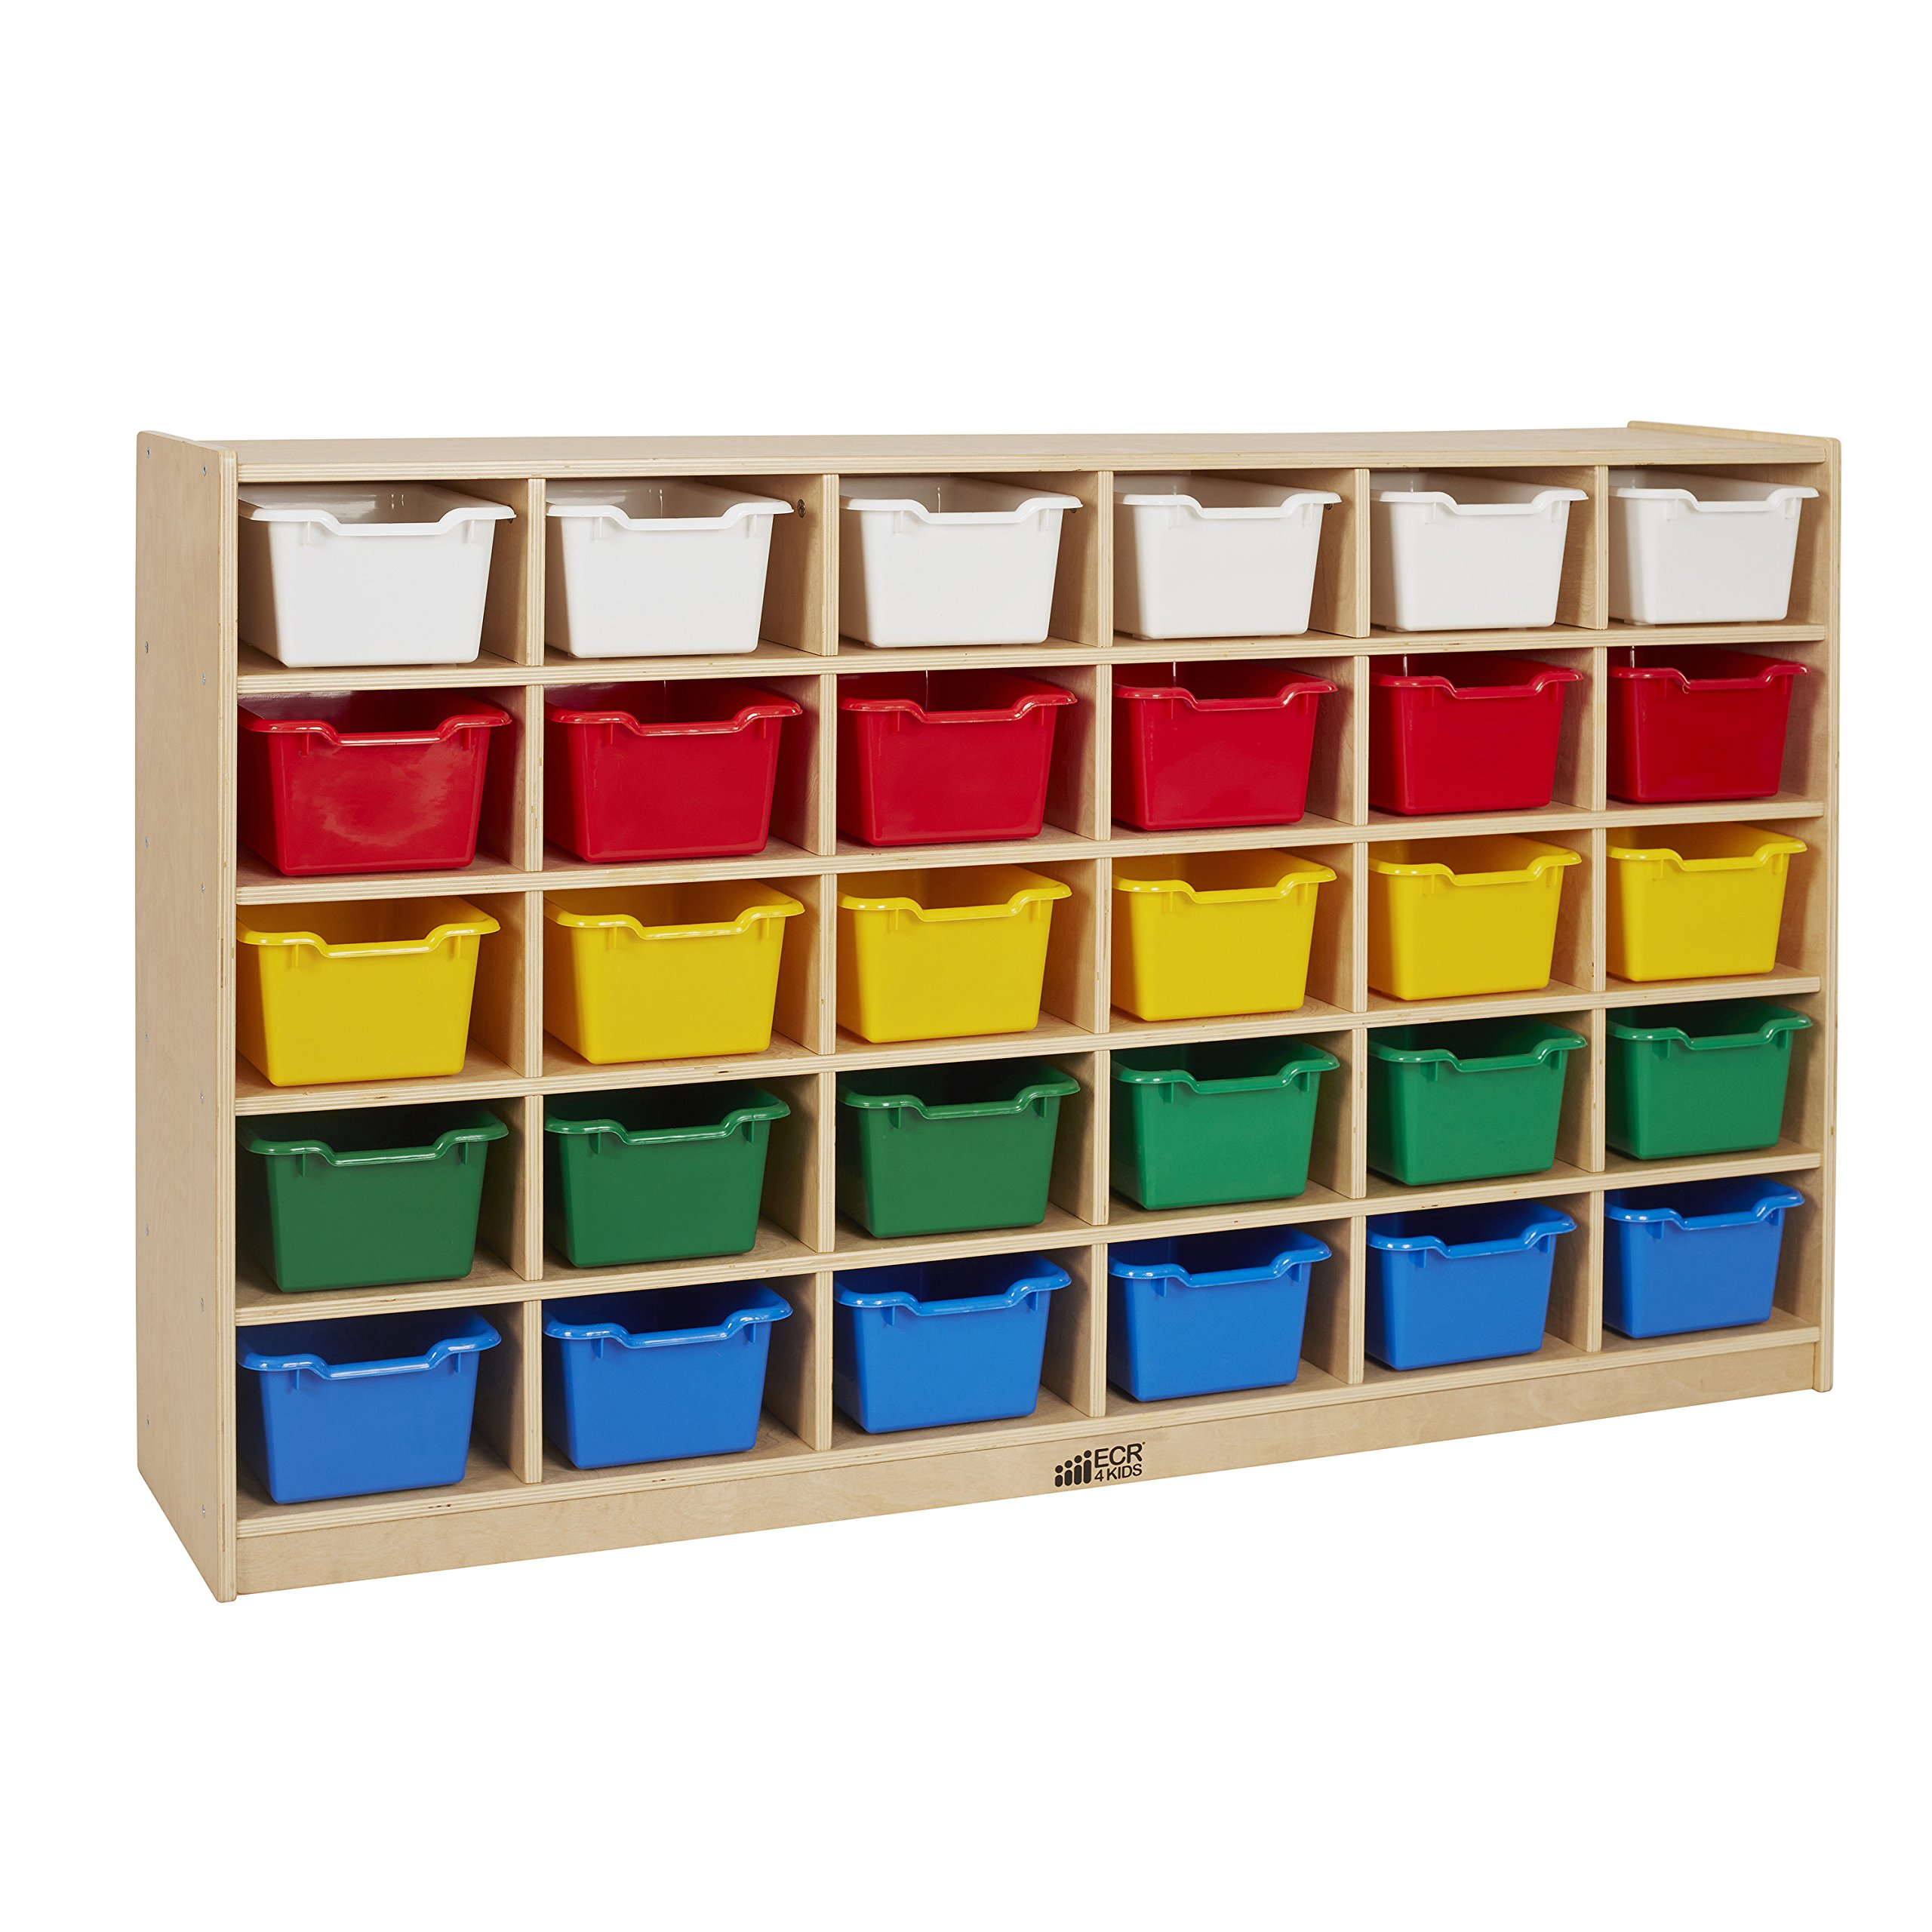 ECR4Kids Birch 30 Cubby Tray Cabinet with 30 Scoop Front Bins, Assorted Colors